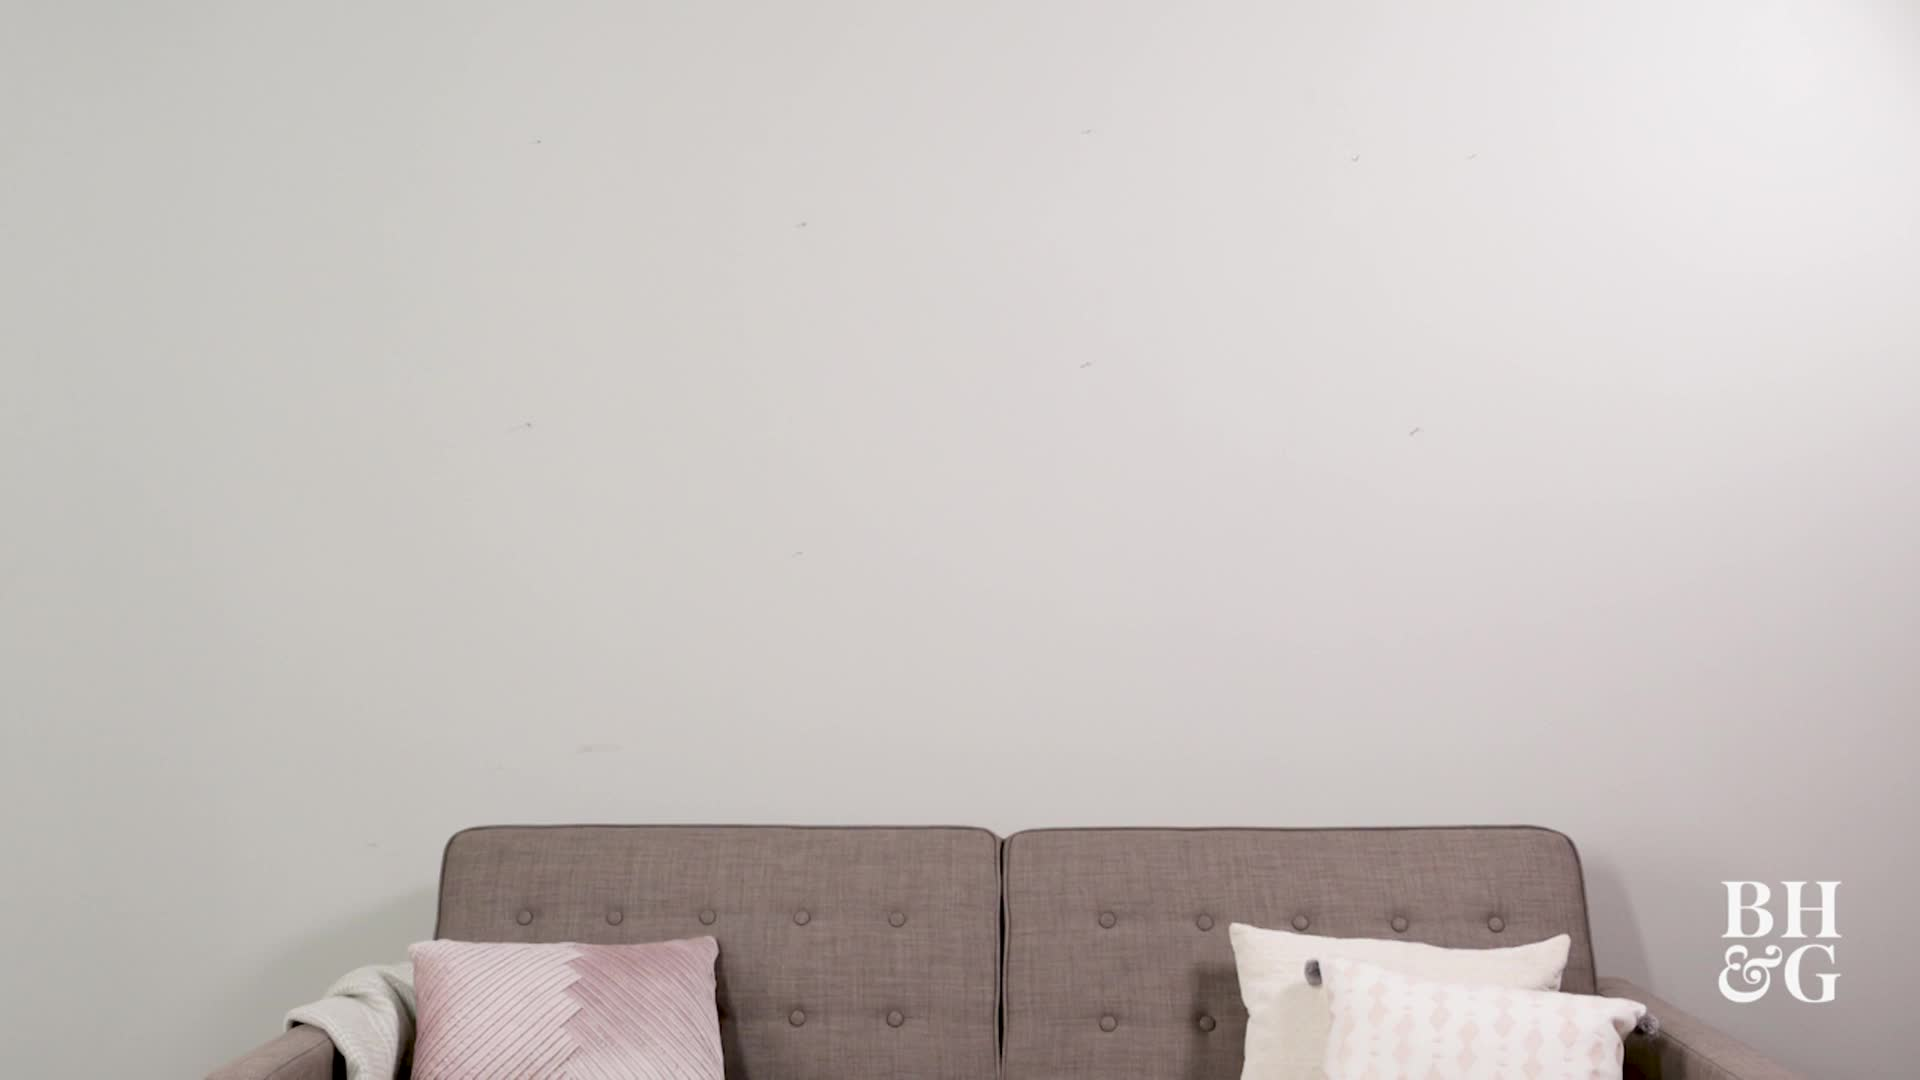 How to Hang a Gallery Wall in 5 Easy Steps